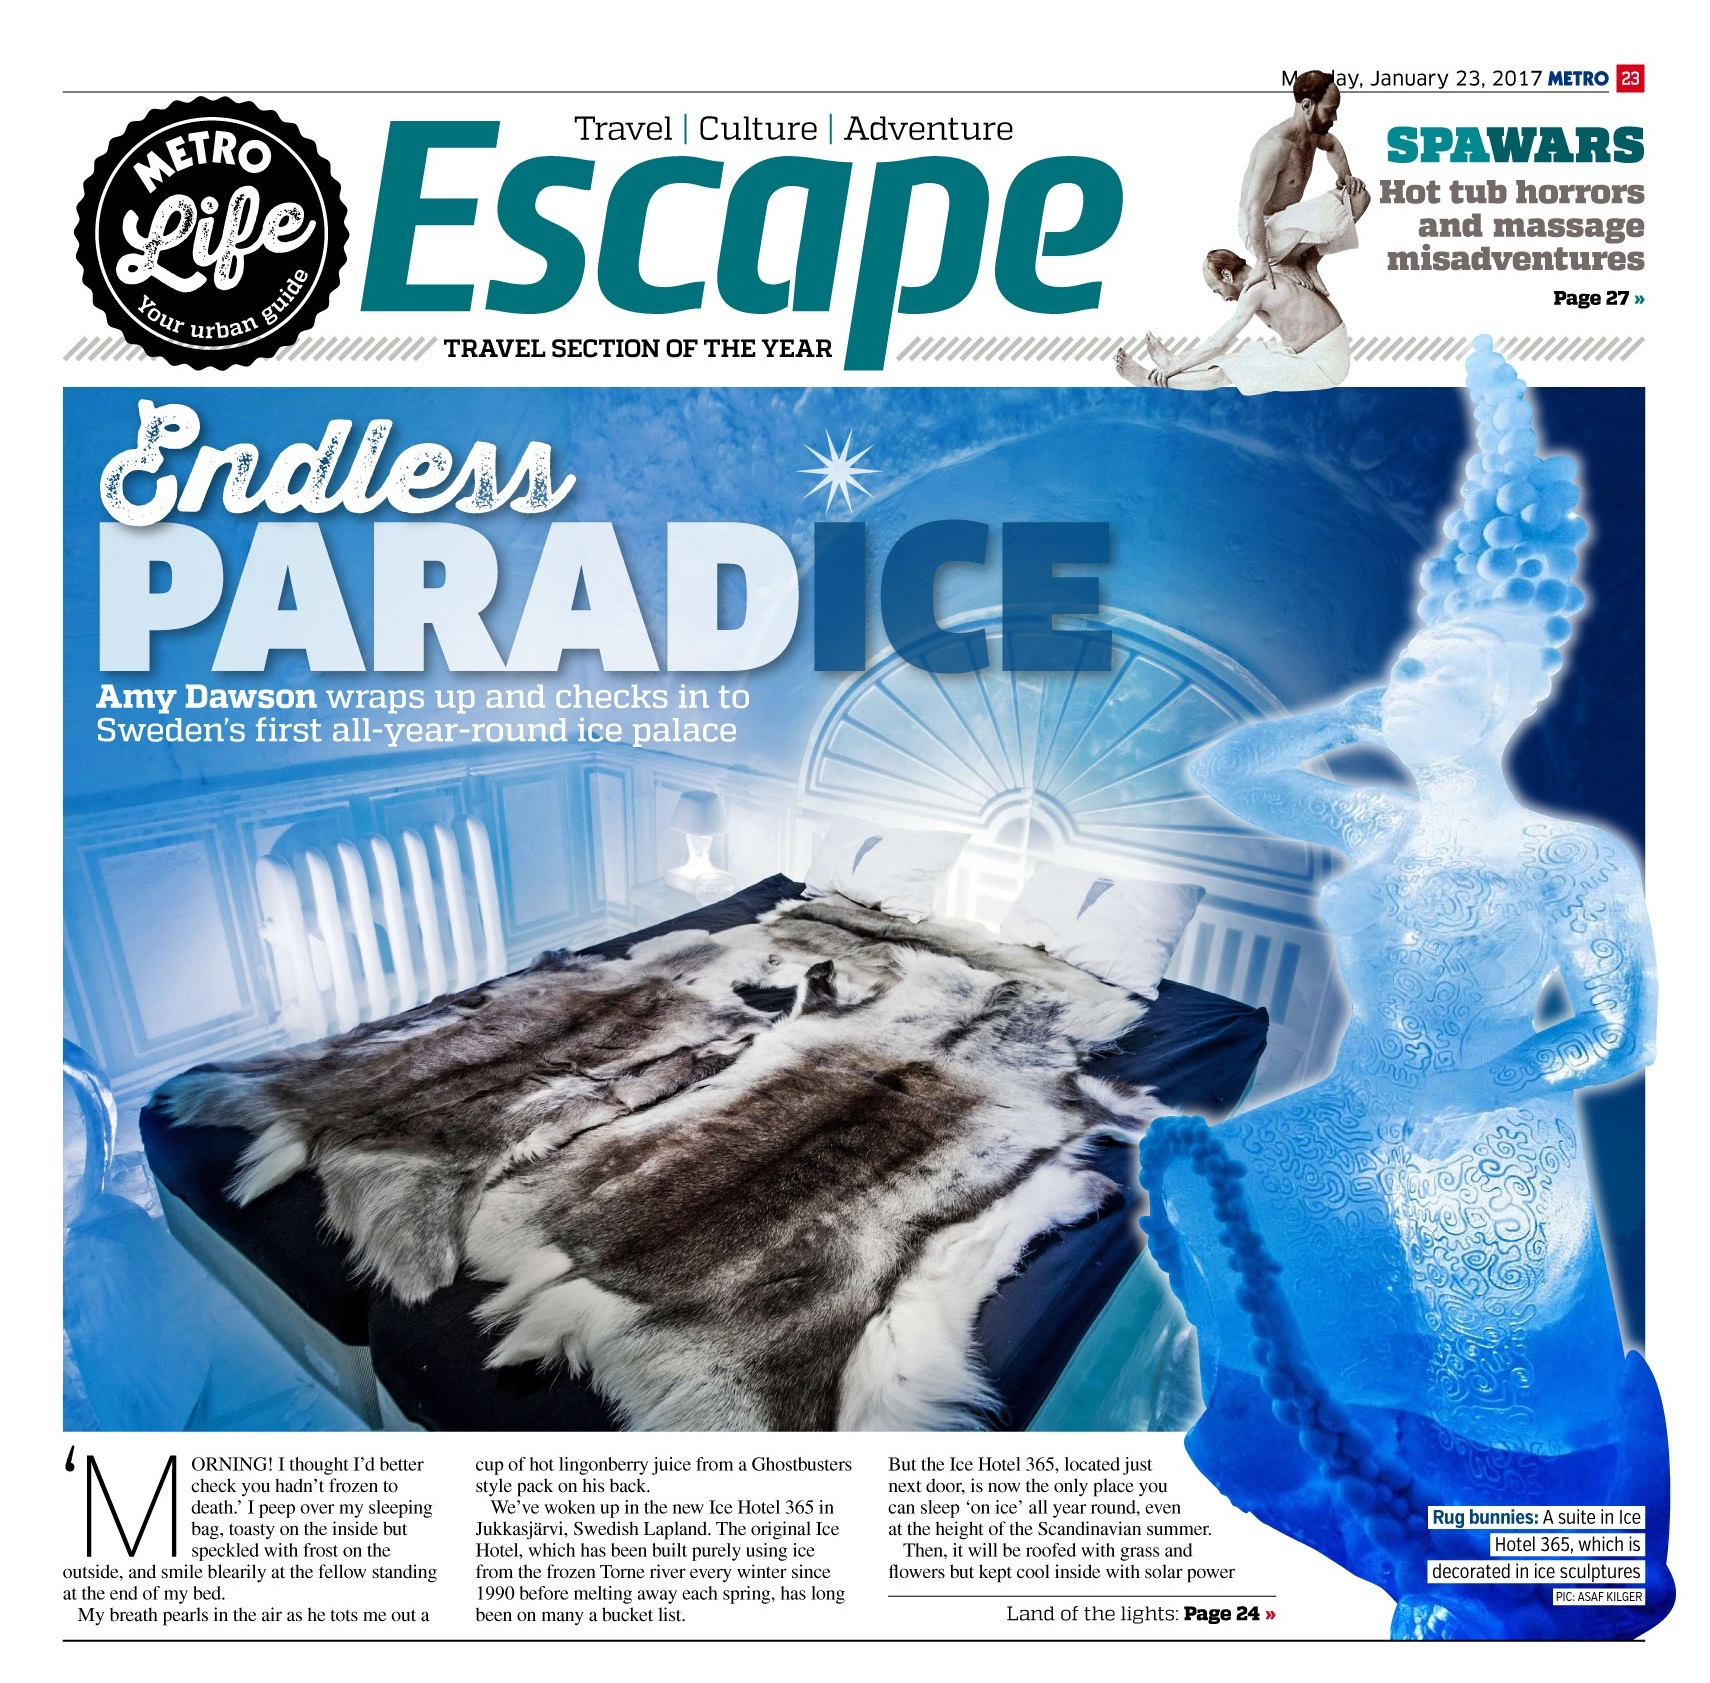 Endlesss ParadICE: Inside the world's first all-year round ice palace (Metro, 23rd Jan 2017)